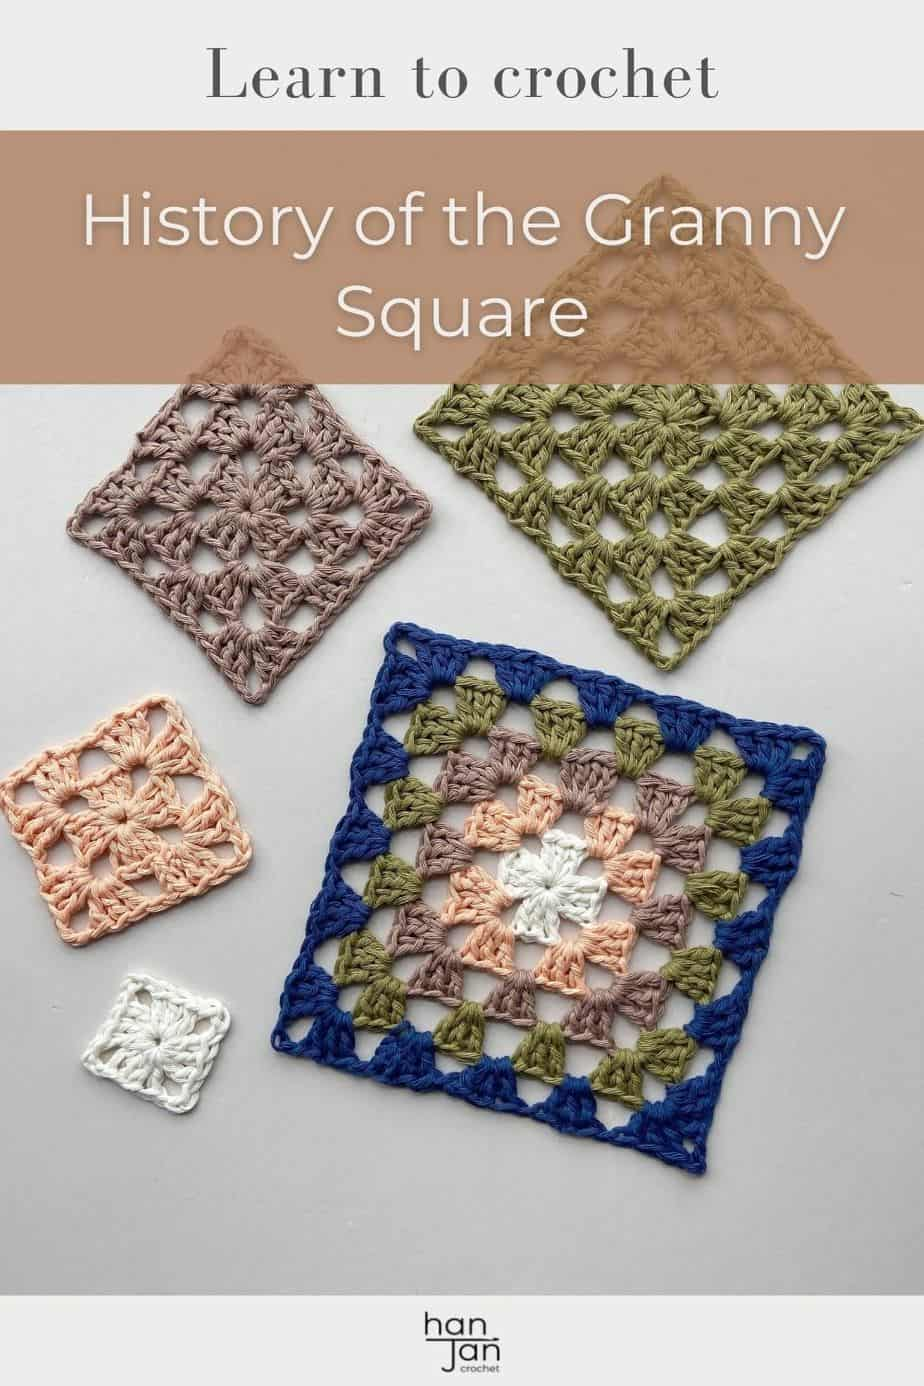 image of 5 different sized crochet granny squares with the title history of the granny square.